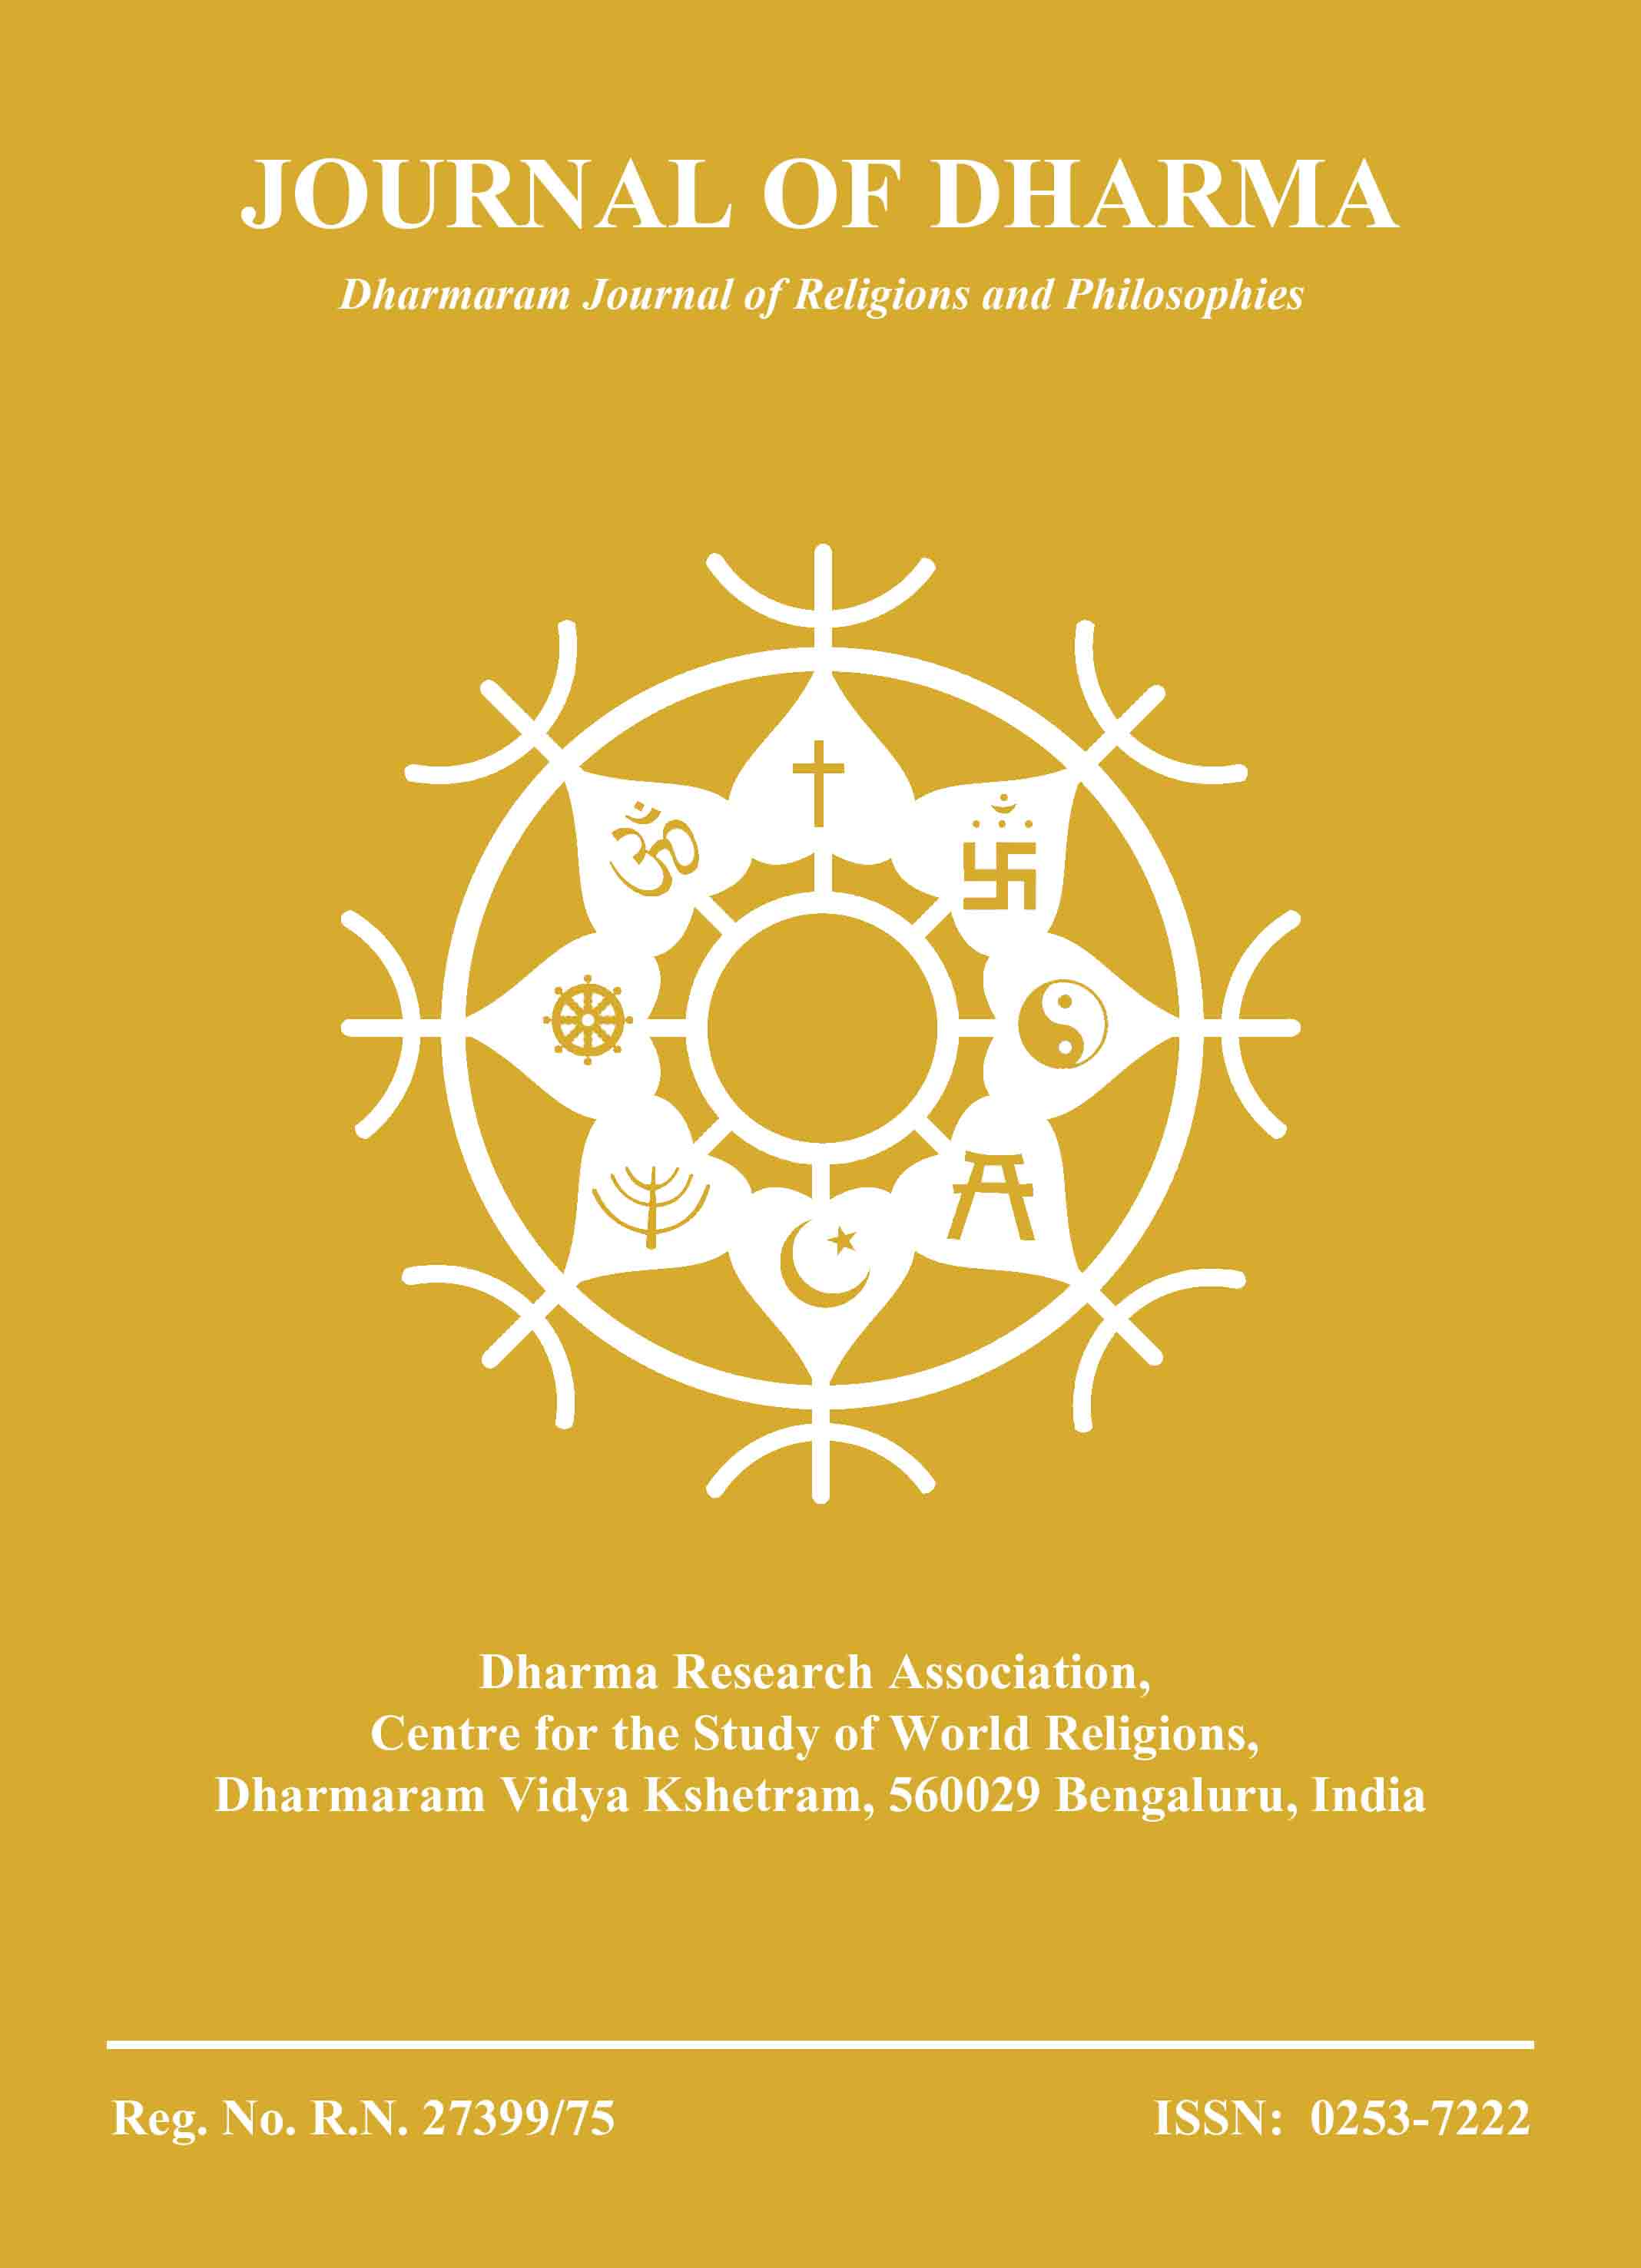 Journal of Dharma